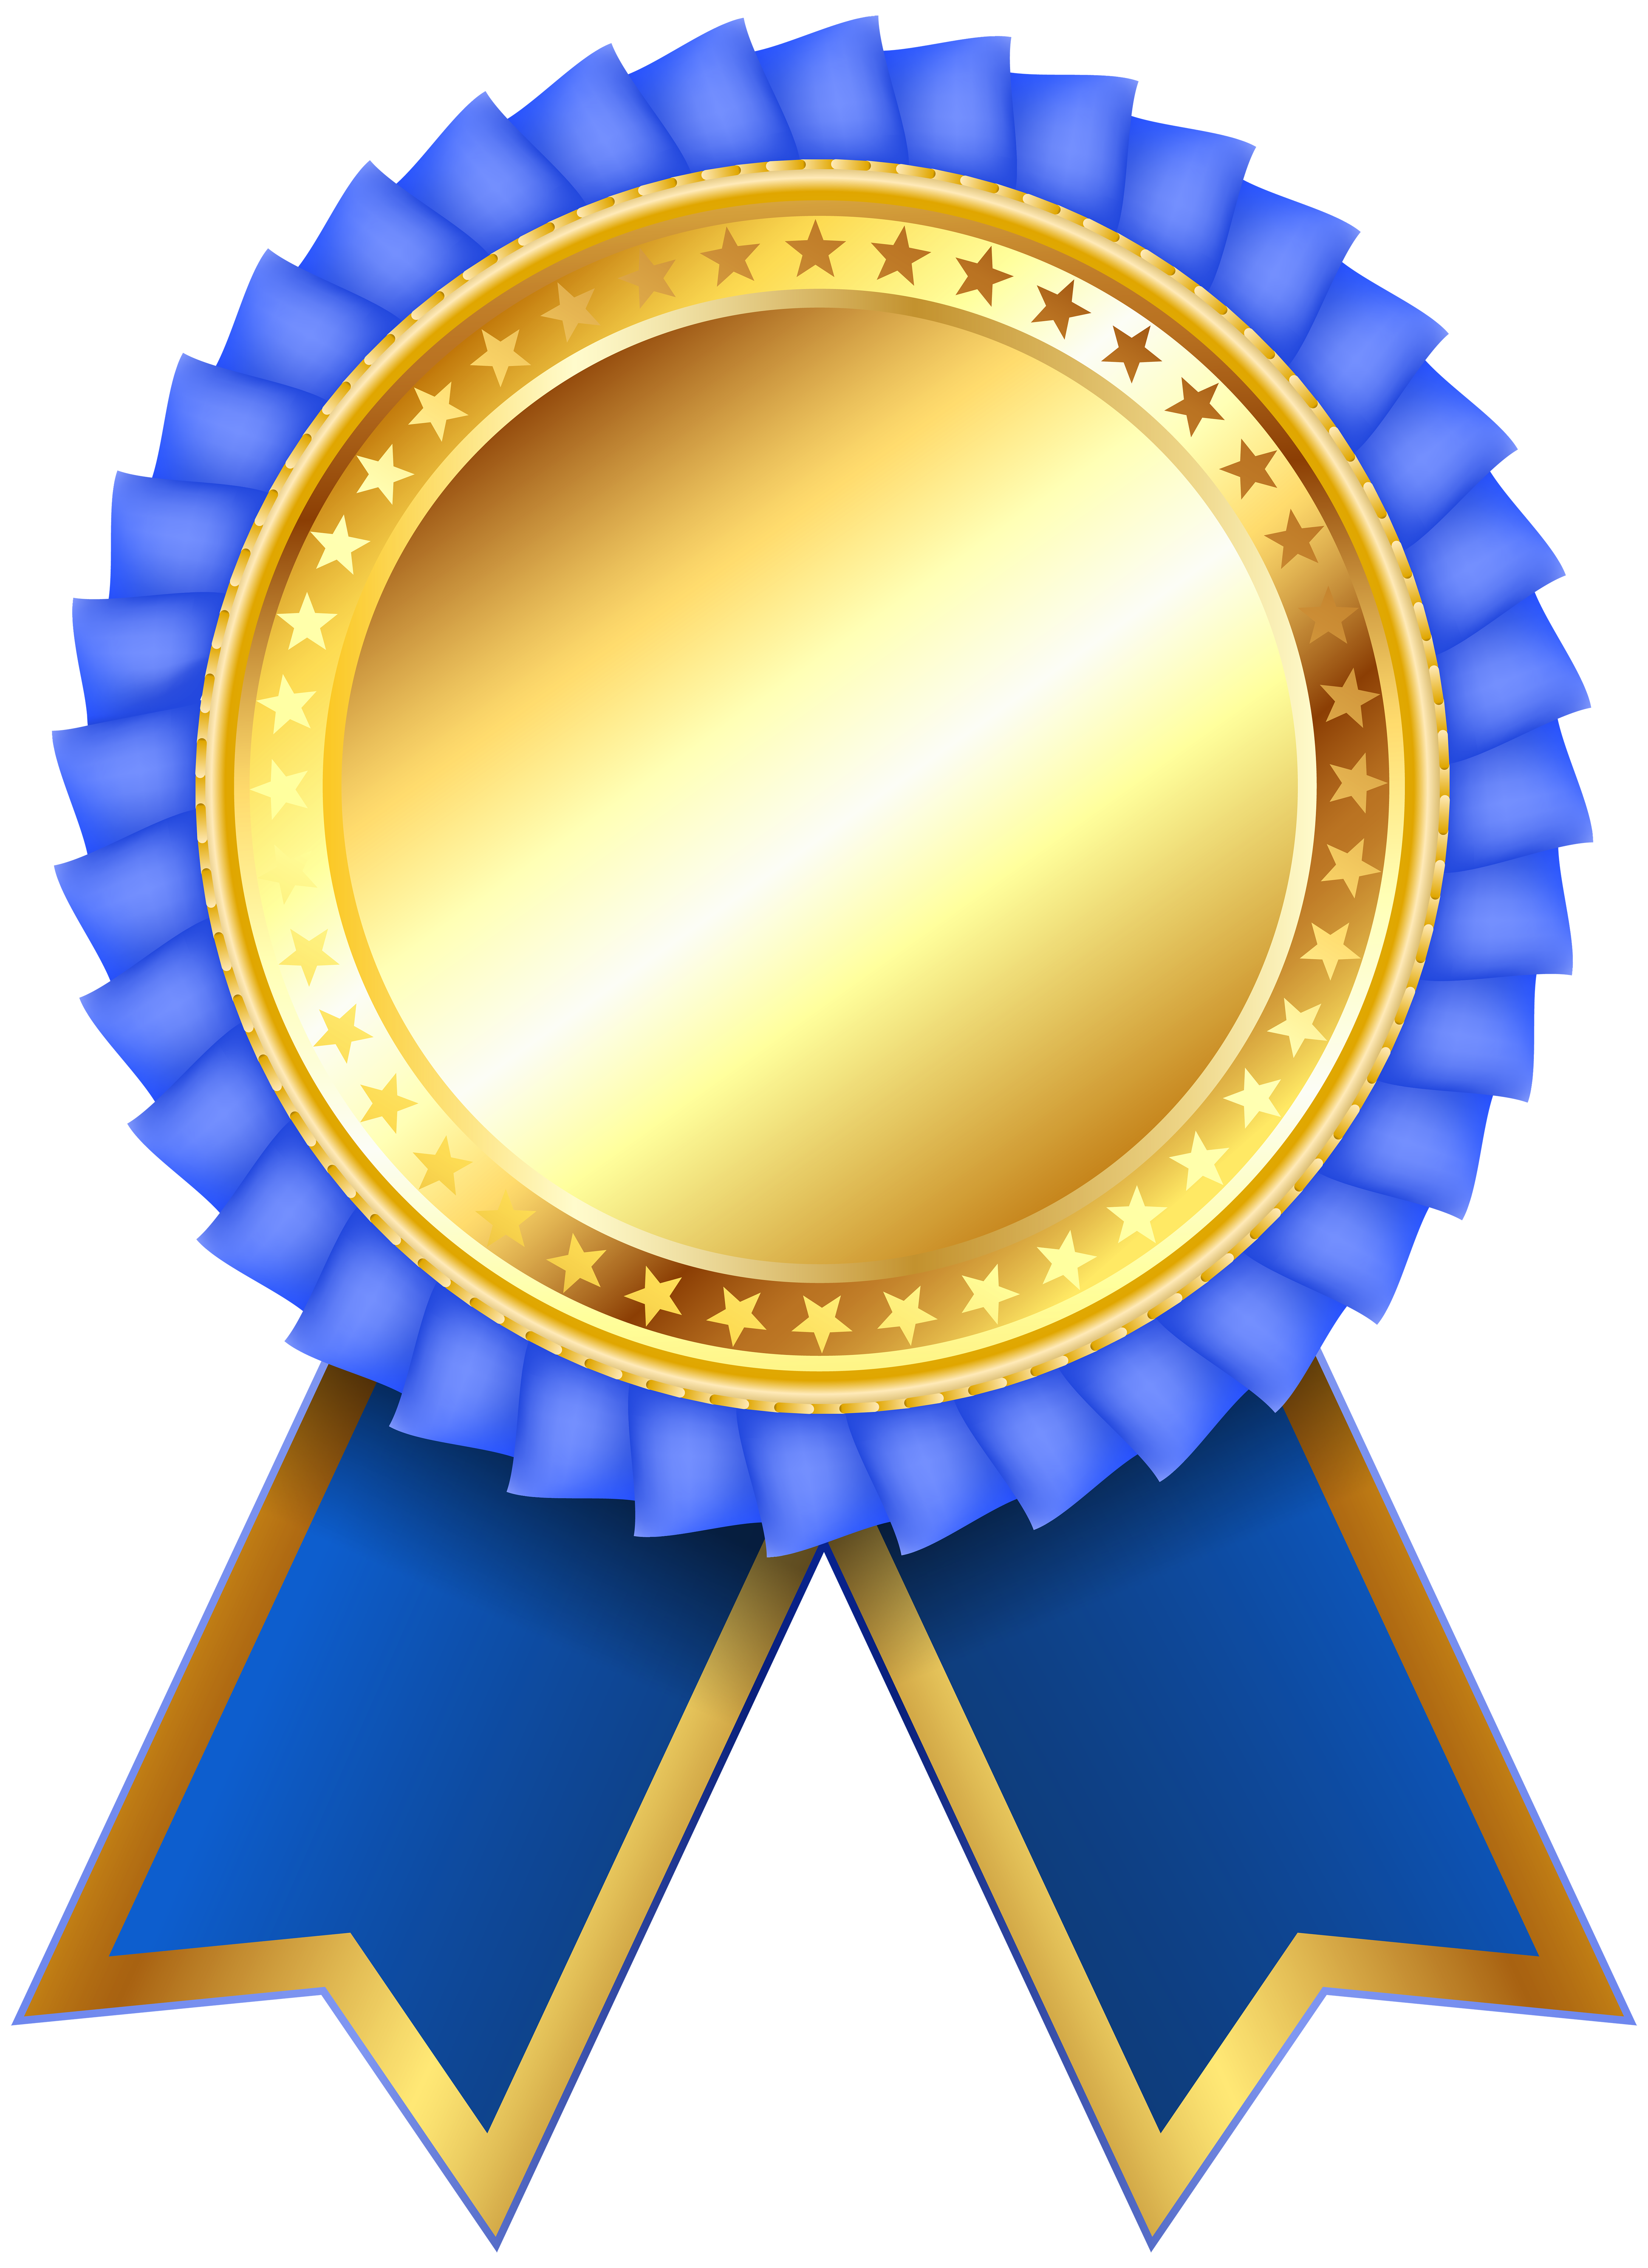 award clipart file 9 15336 transparentpng rh transparentpng com award clipart free award clipart for teachers